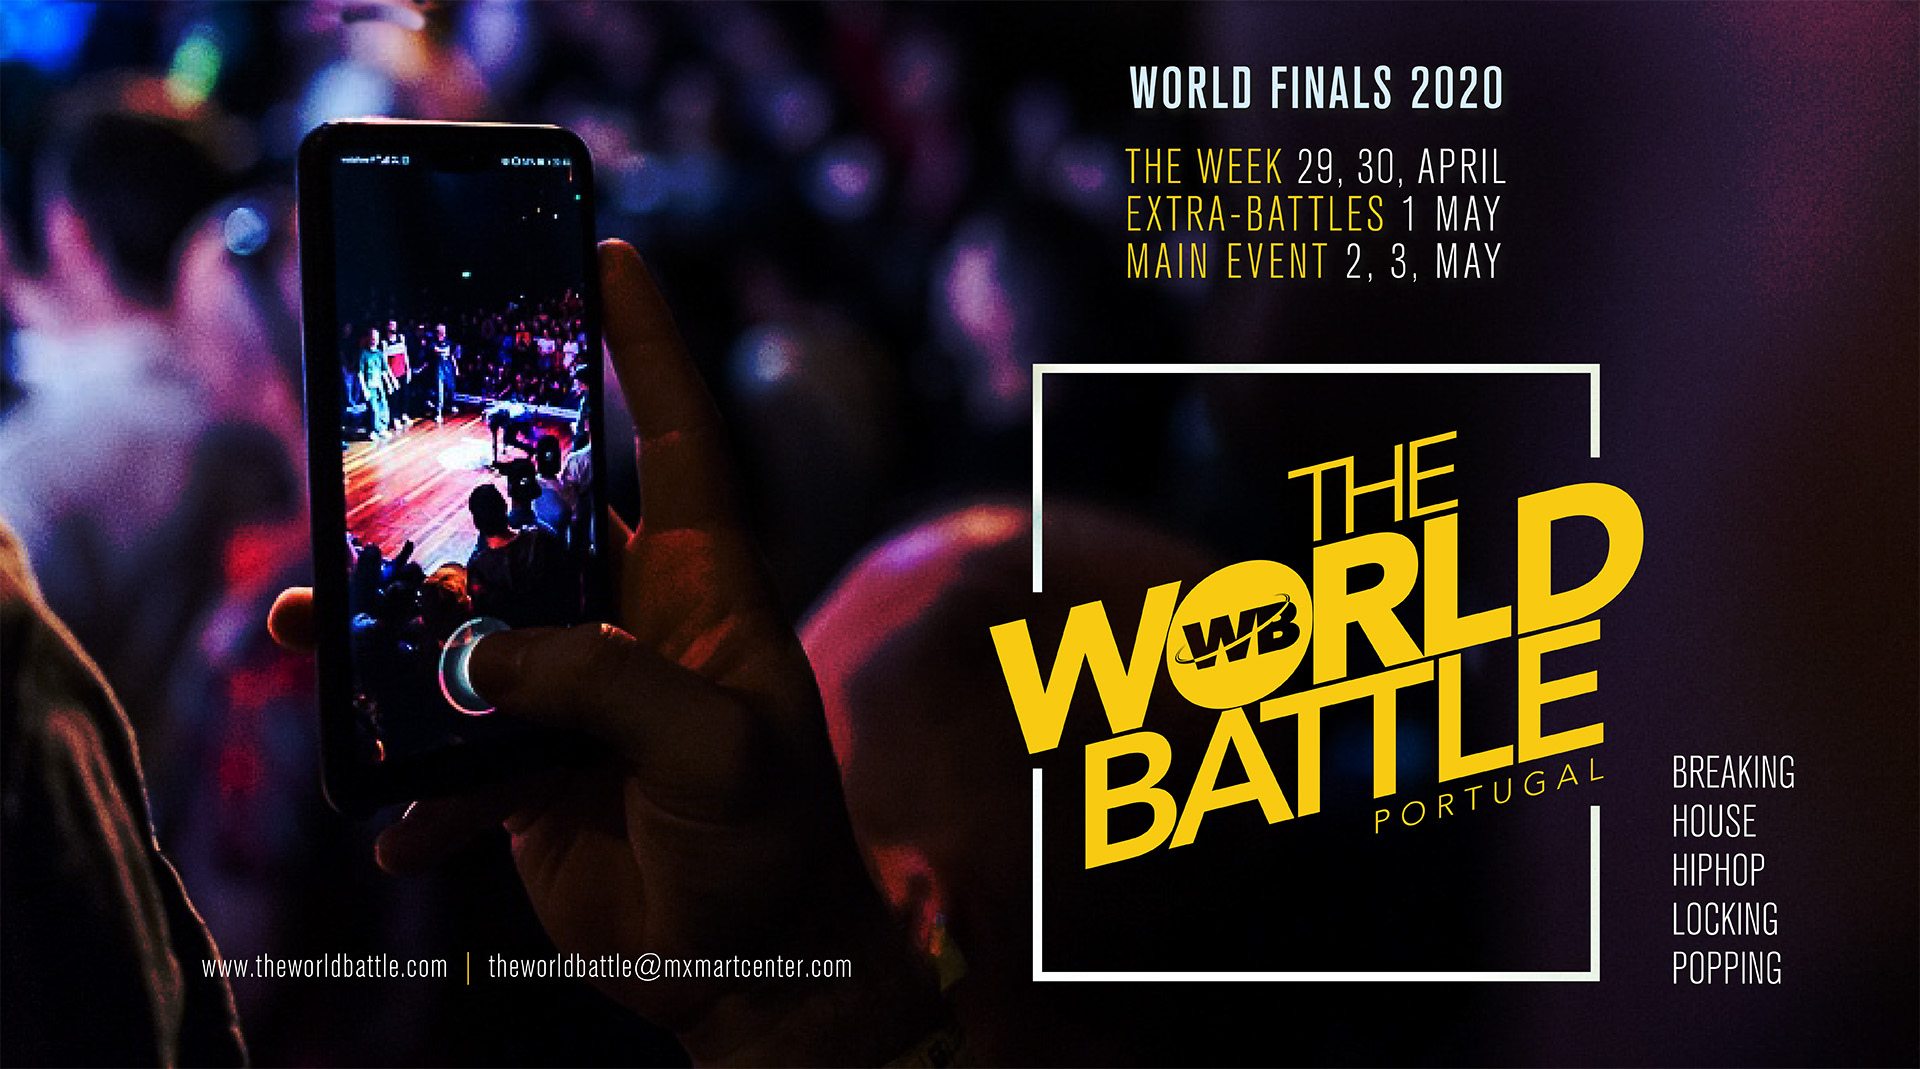 The World Battle 2020